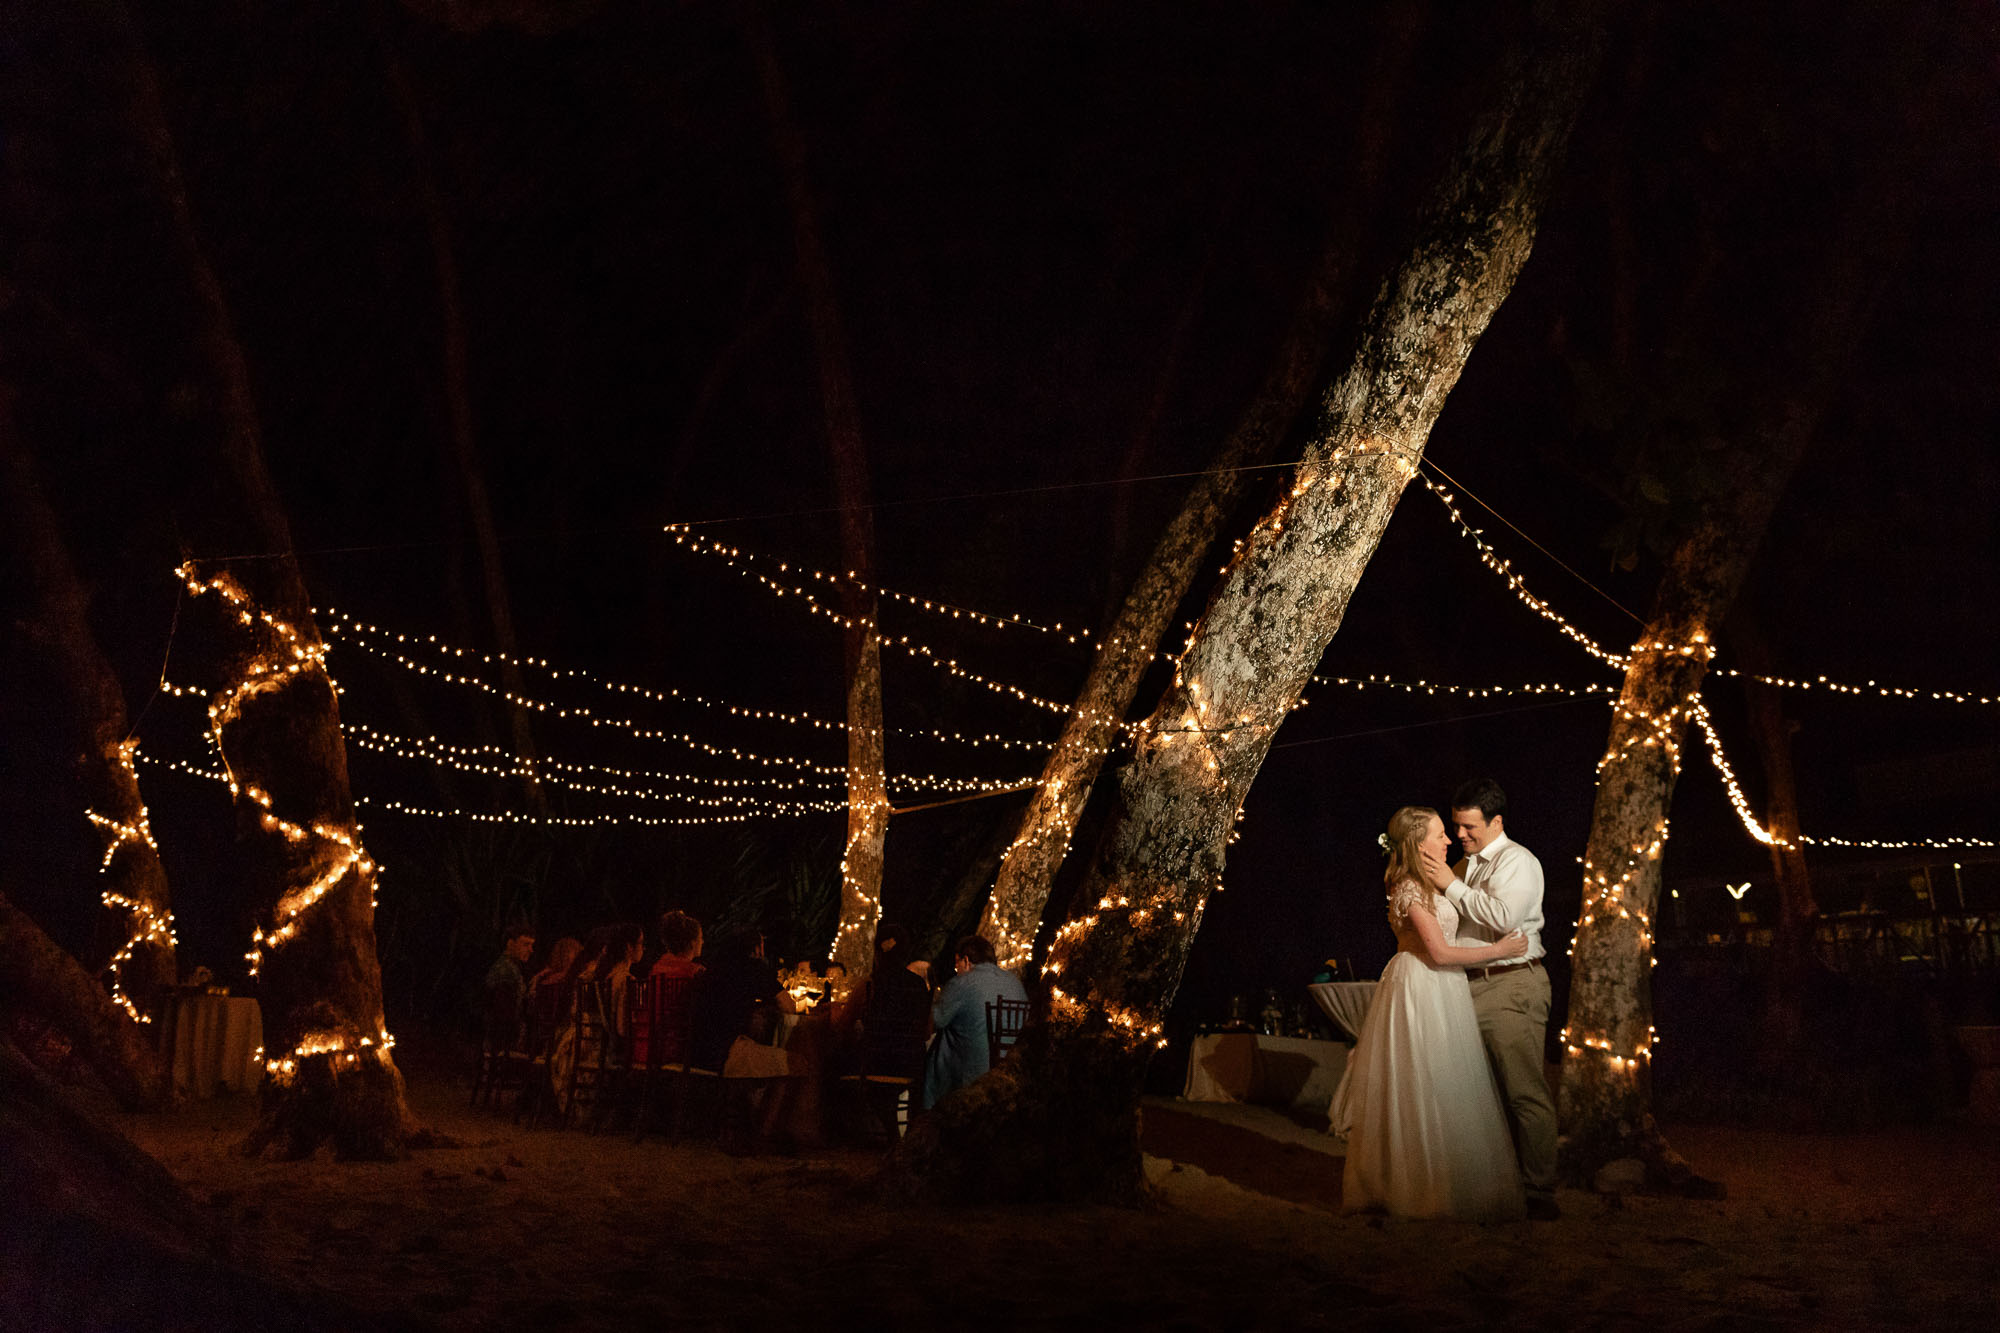 Creative wedding photography: spotlight on the couple surrounded by fairy lights